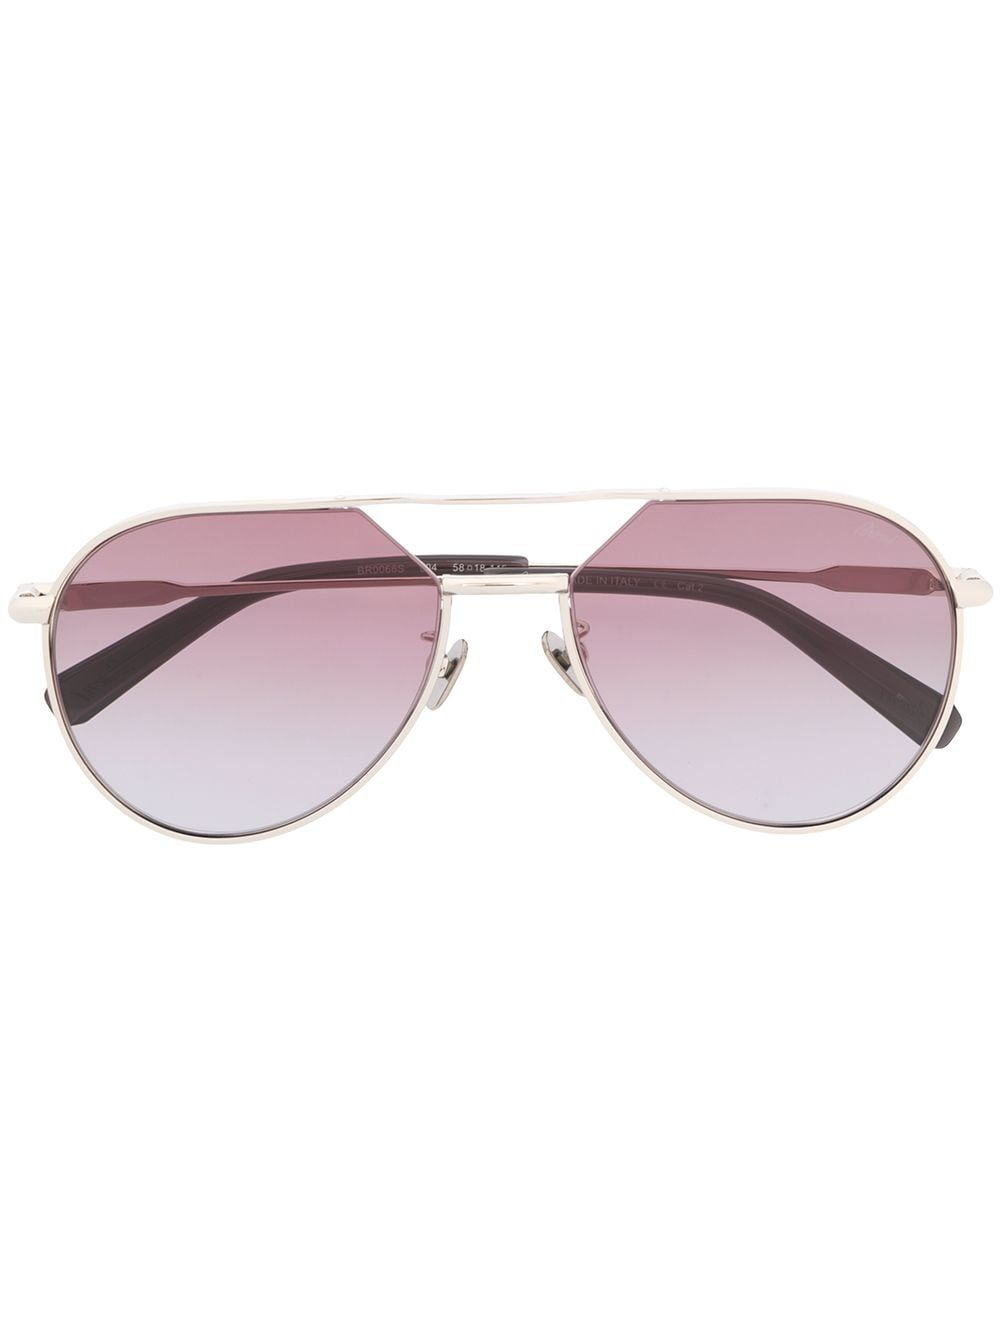 Brioni cut-off aviator sunglasses